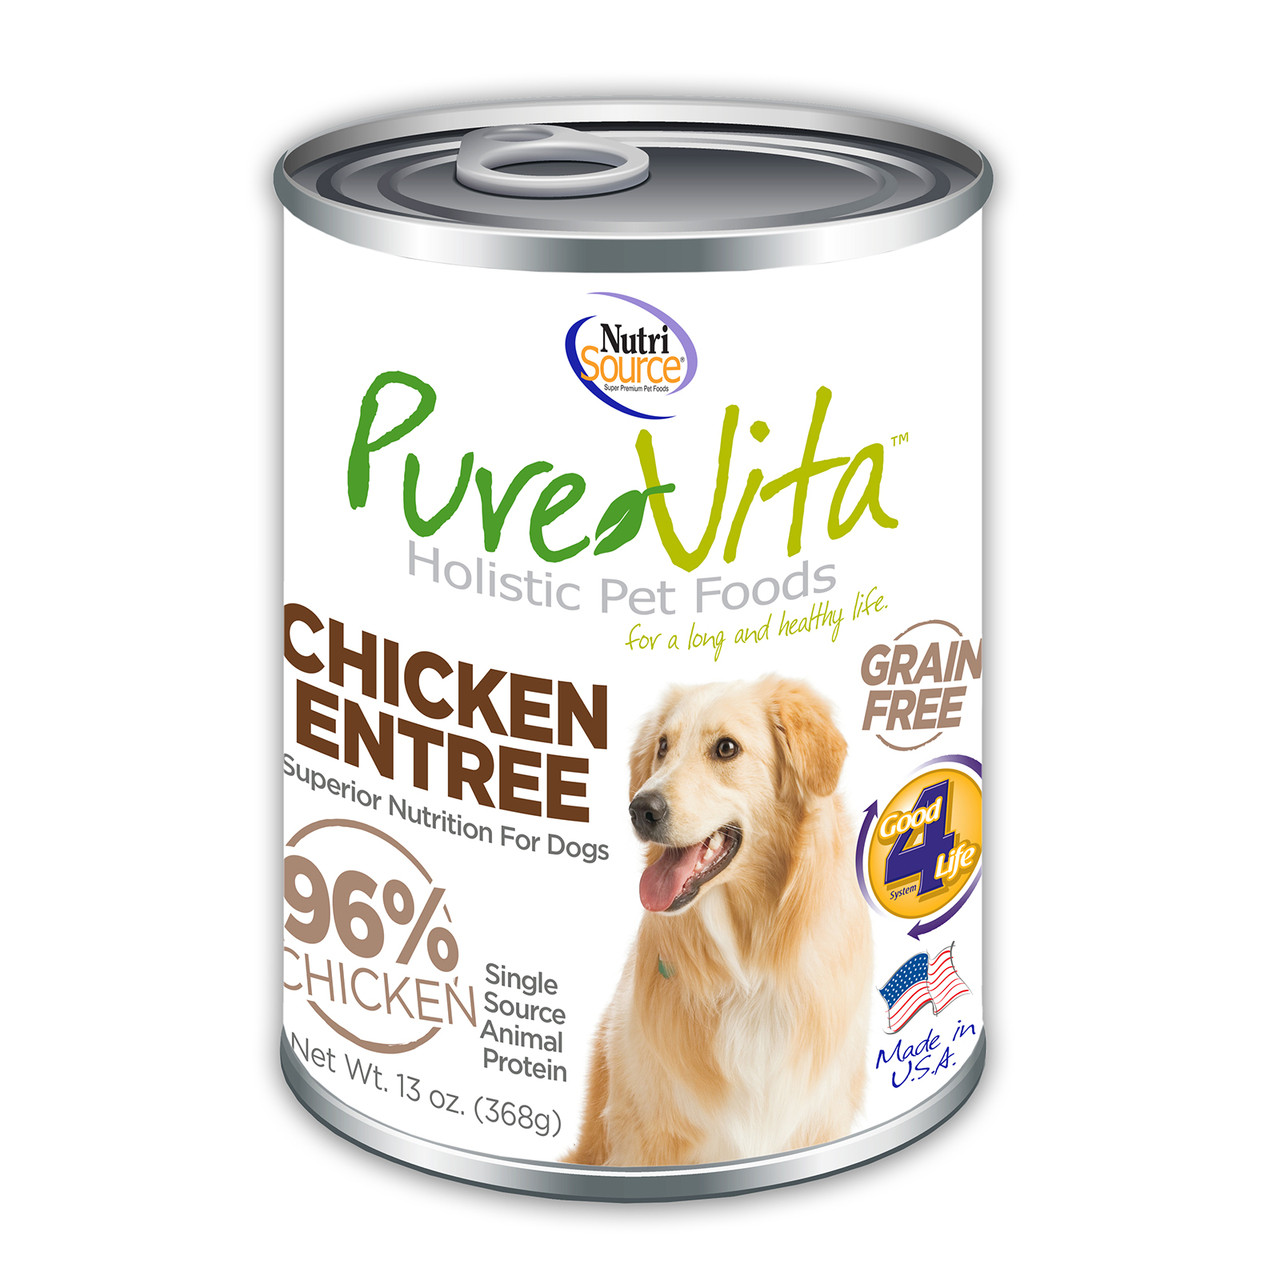 click here to shop PureVita Chicken Entree Canned Dog Food